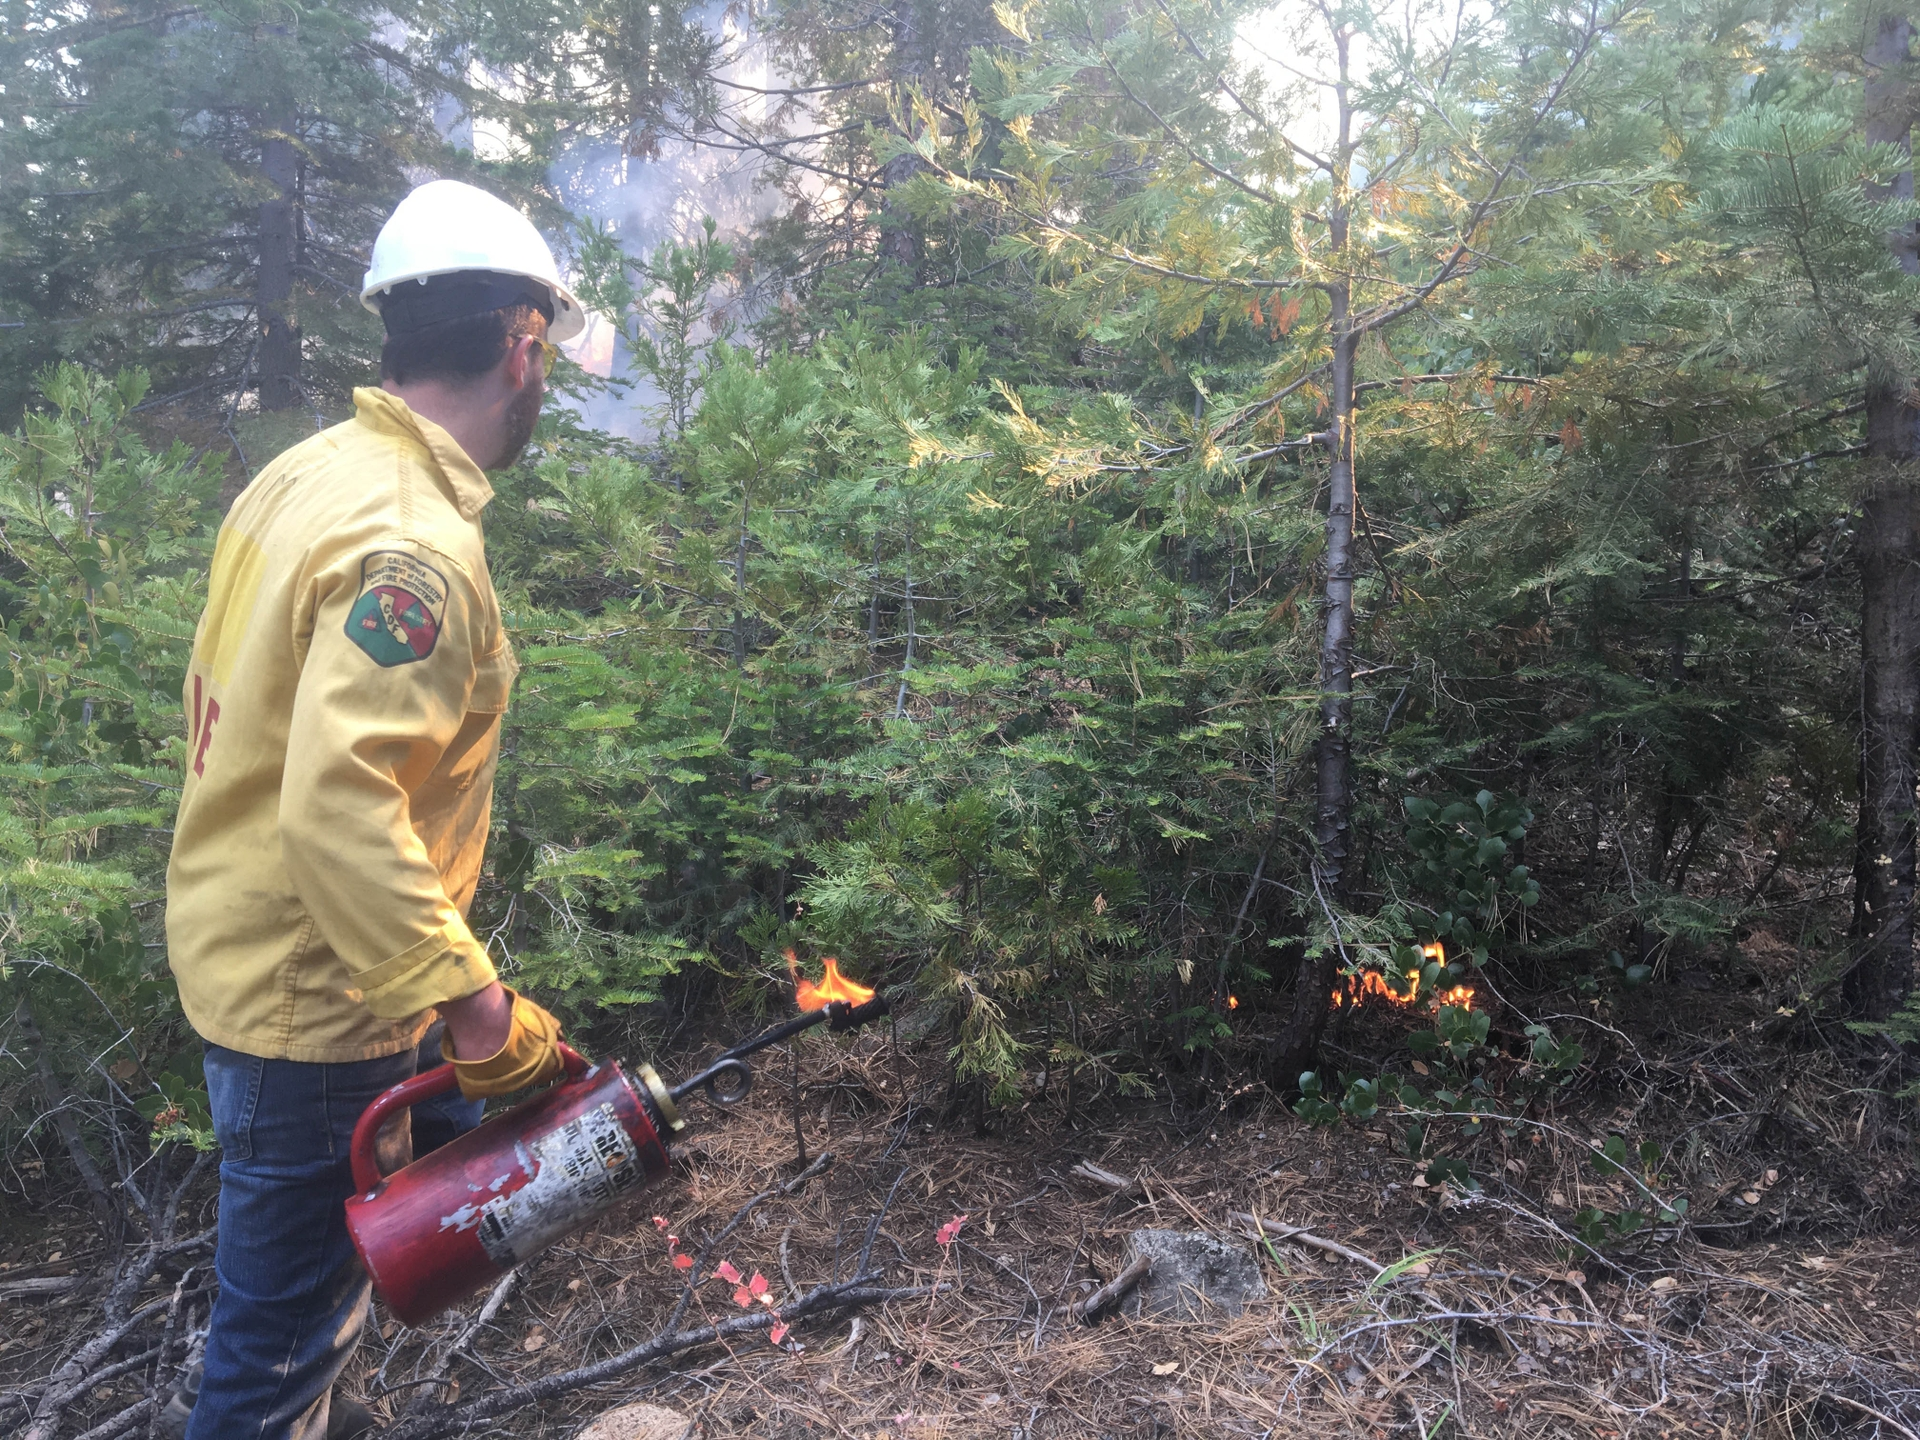 Bob Evans from the Natural Resource Conservation Service uses a drip torch to thin a thicket of trees with low intensity fire.